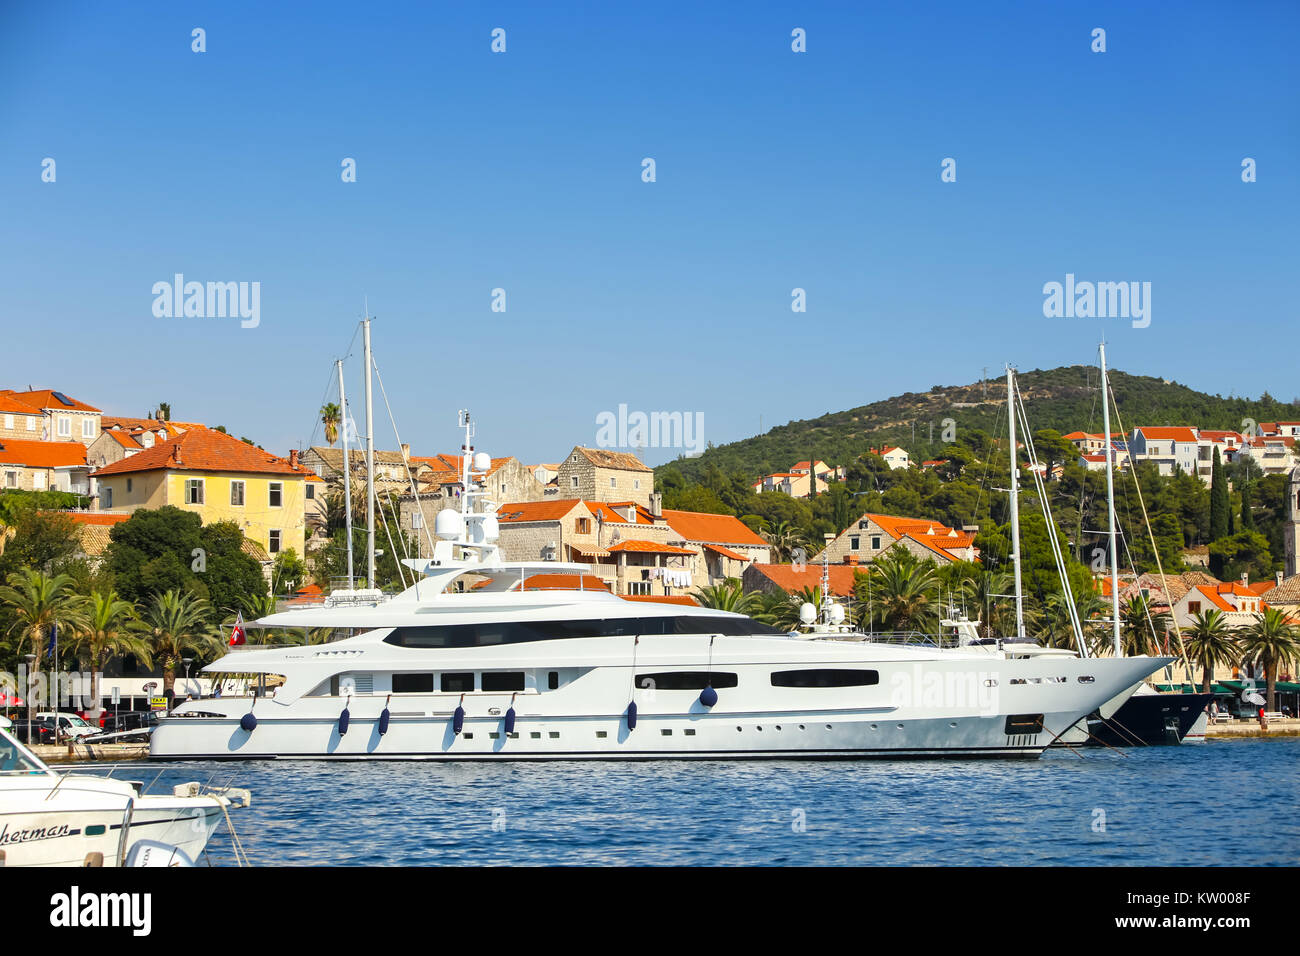 CAVTAT, CROATIA - JULY 20, 2017 : A view of a yacht anchored in front of seaside in Cavtat, Croatia. - Stock Image